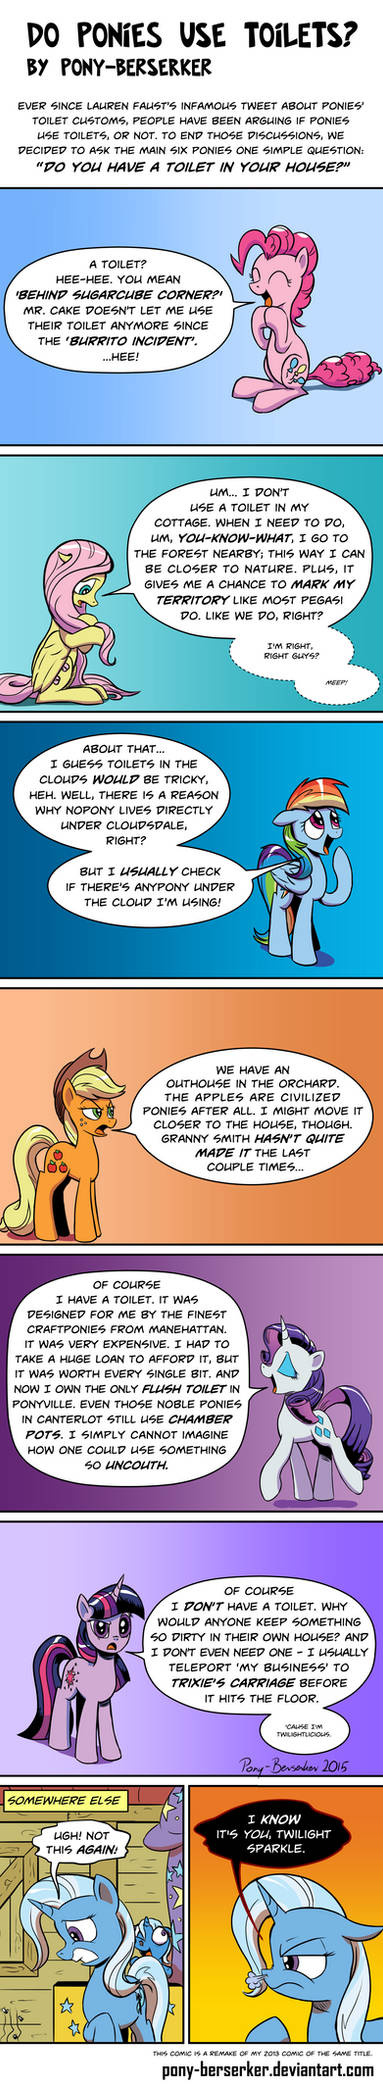 Do Ponies Use Toilets? (remake)